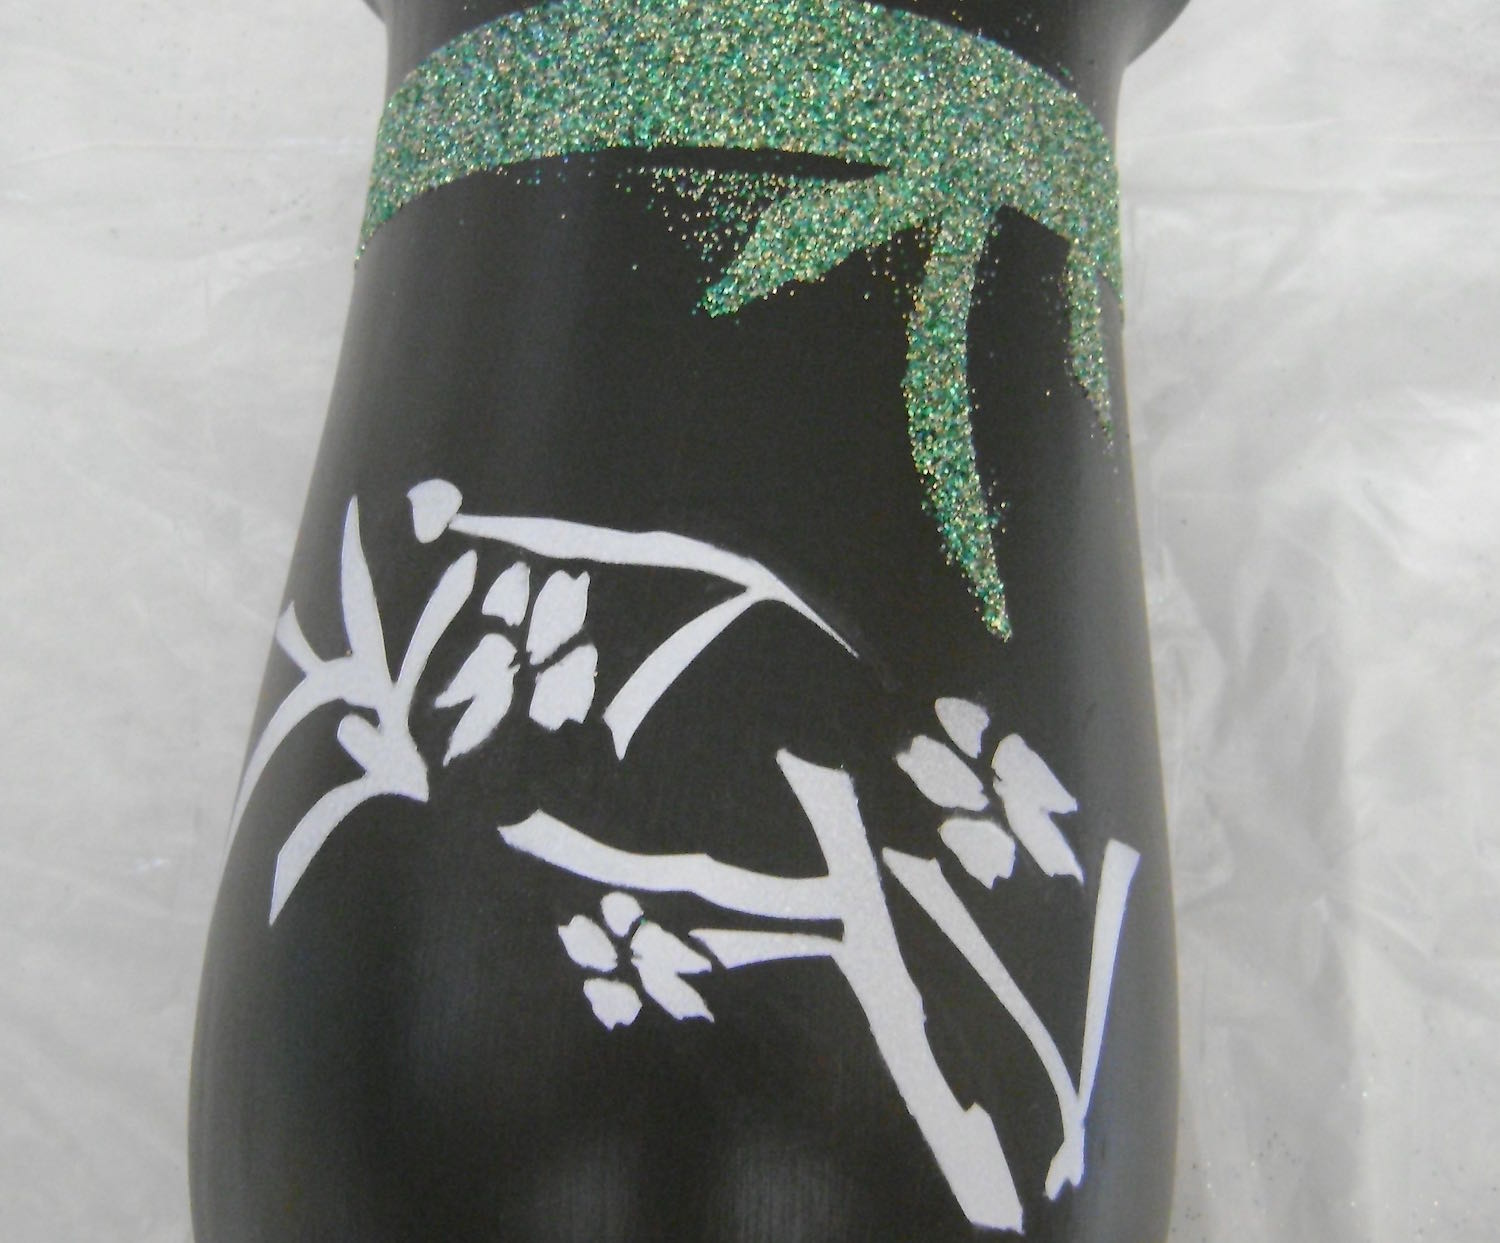 step 10 - Fill the airbrush with the White Pearl paint and spray the stencil.  When dry, remove the stencil from the vase.